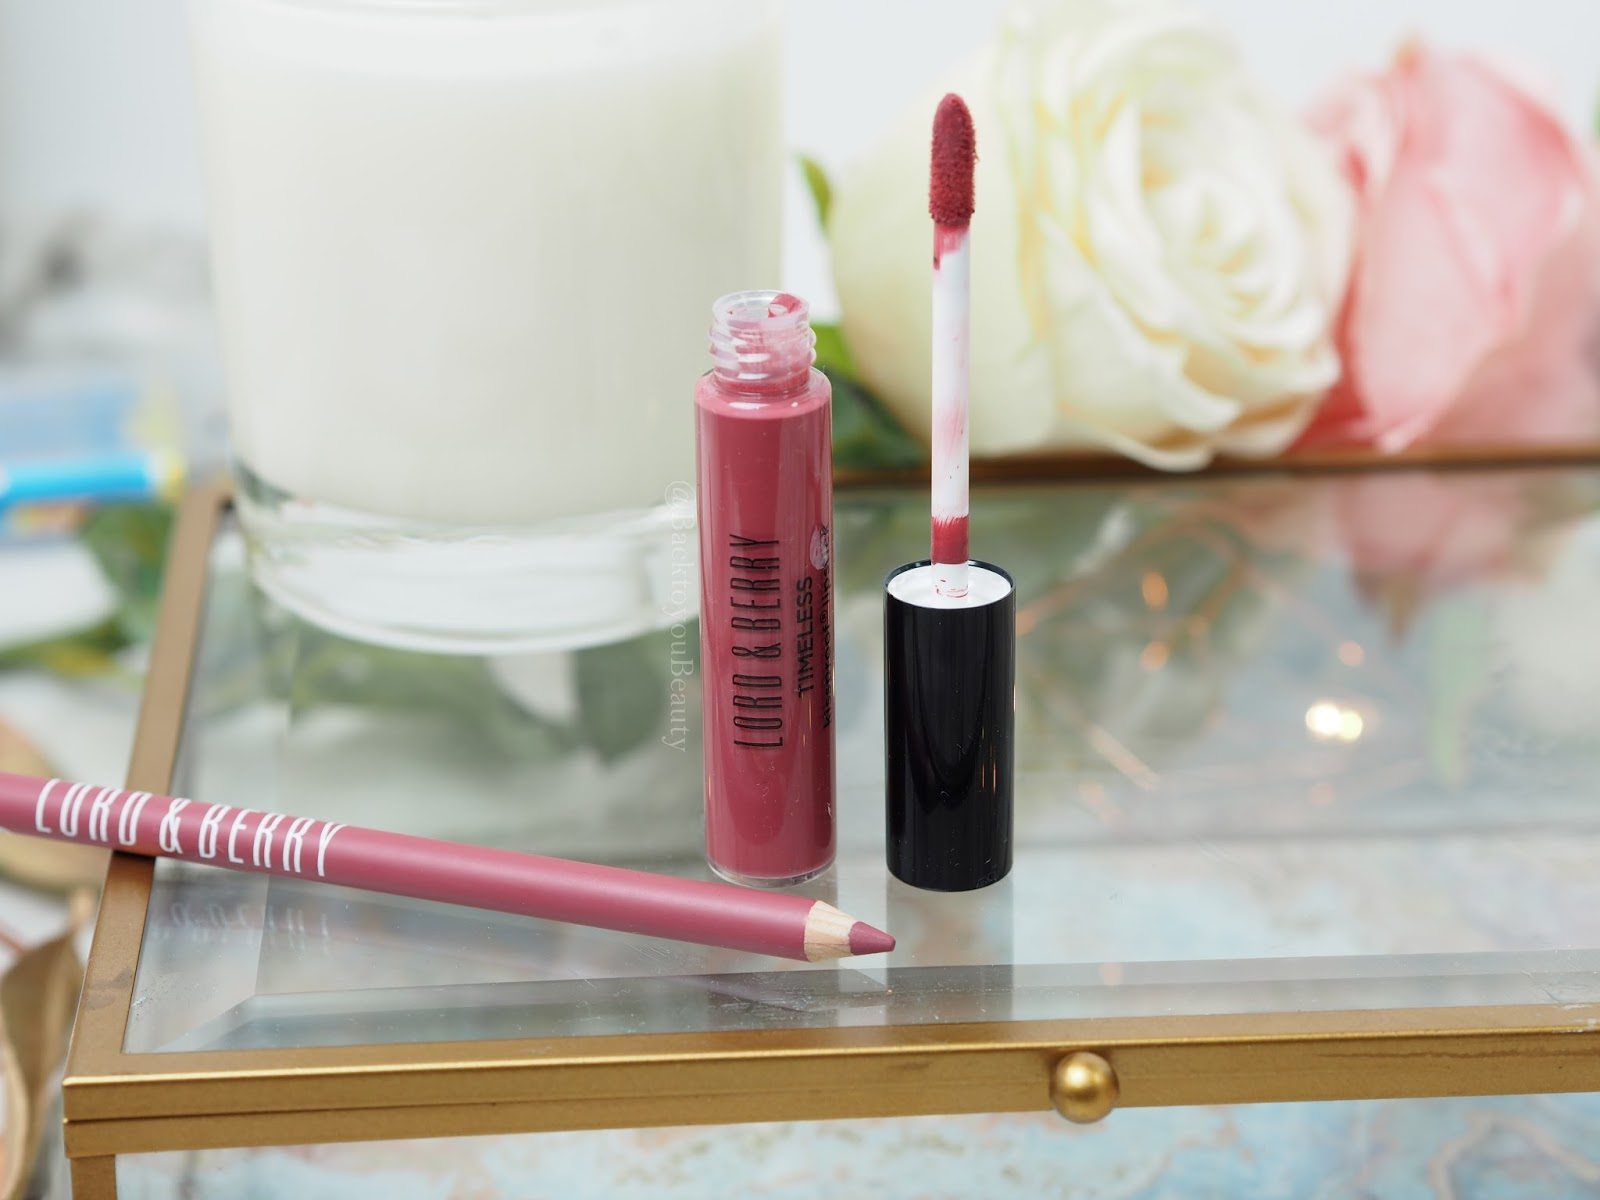 Lord & Berry Timeless Kissproof Lipstick in Bloom